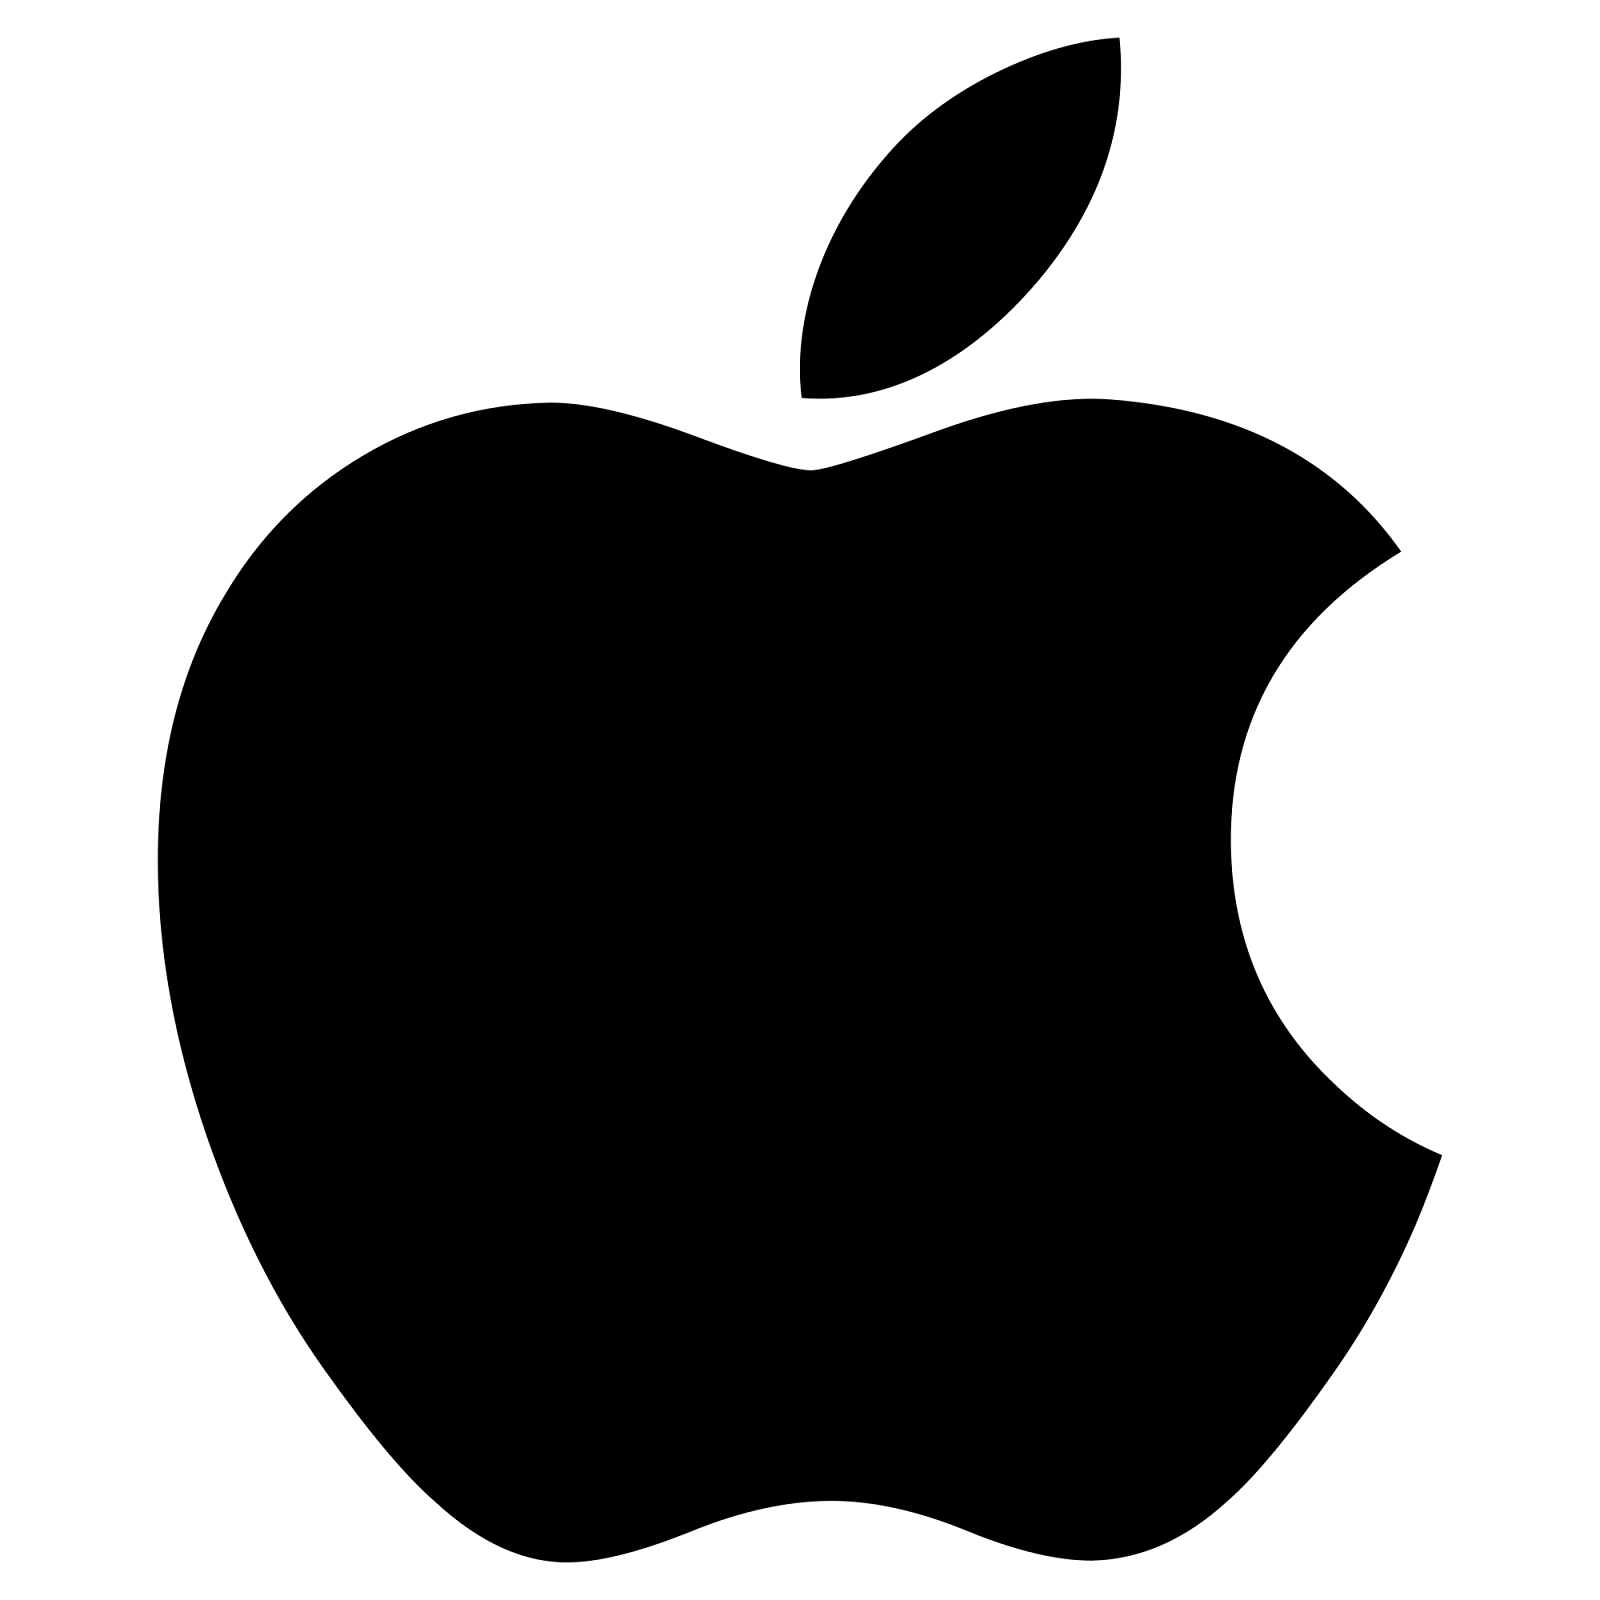 https://upload.wikimedia.org/wikipedia/commons/thumb/f/fa/Apple_logo_black.svg/2000px-Apple_logo_black.svg.png